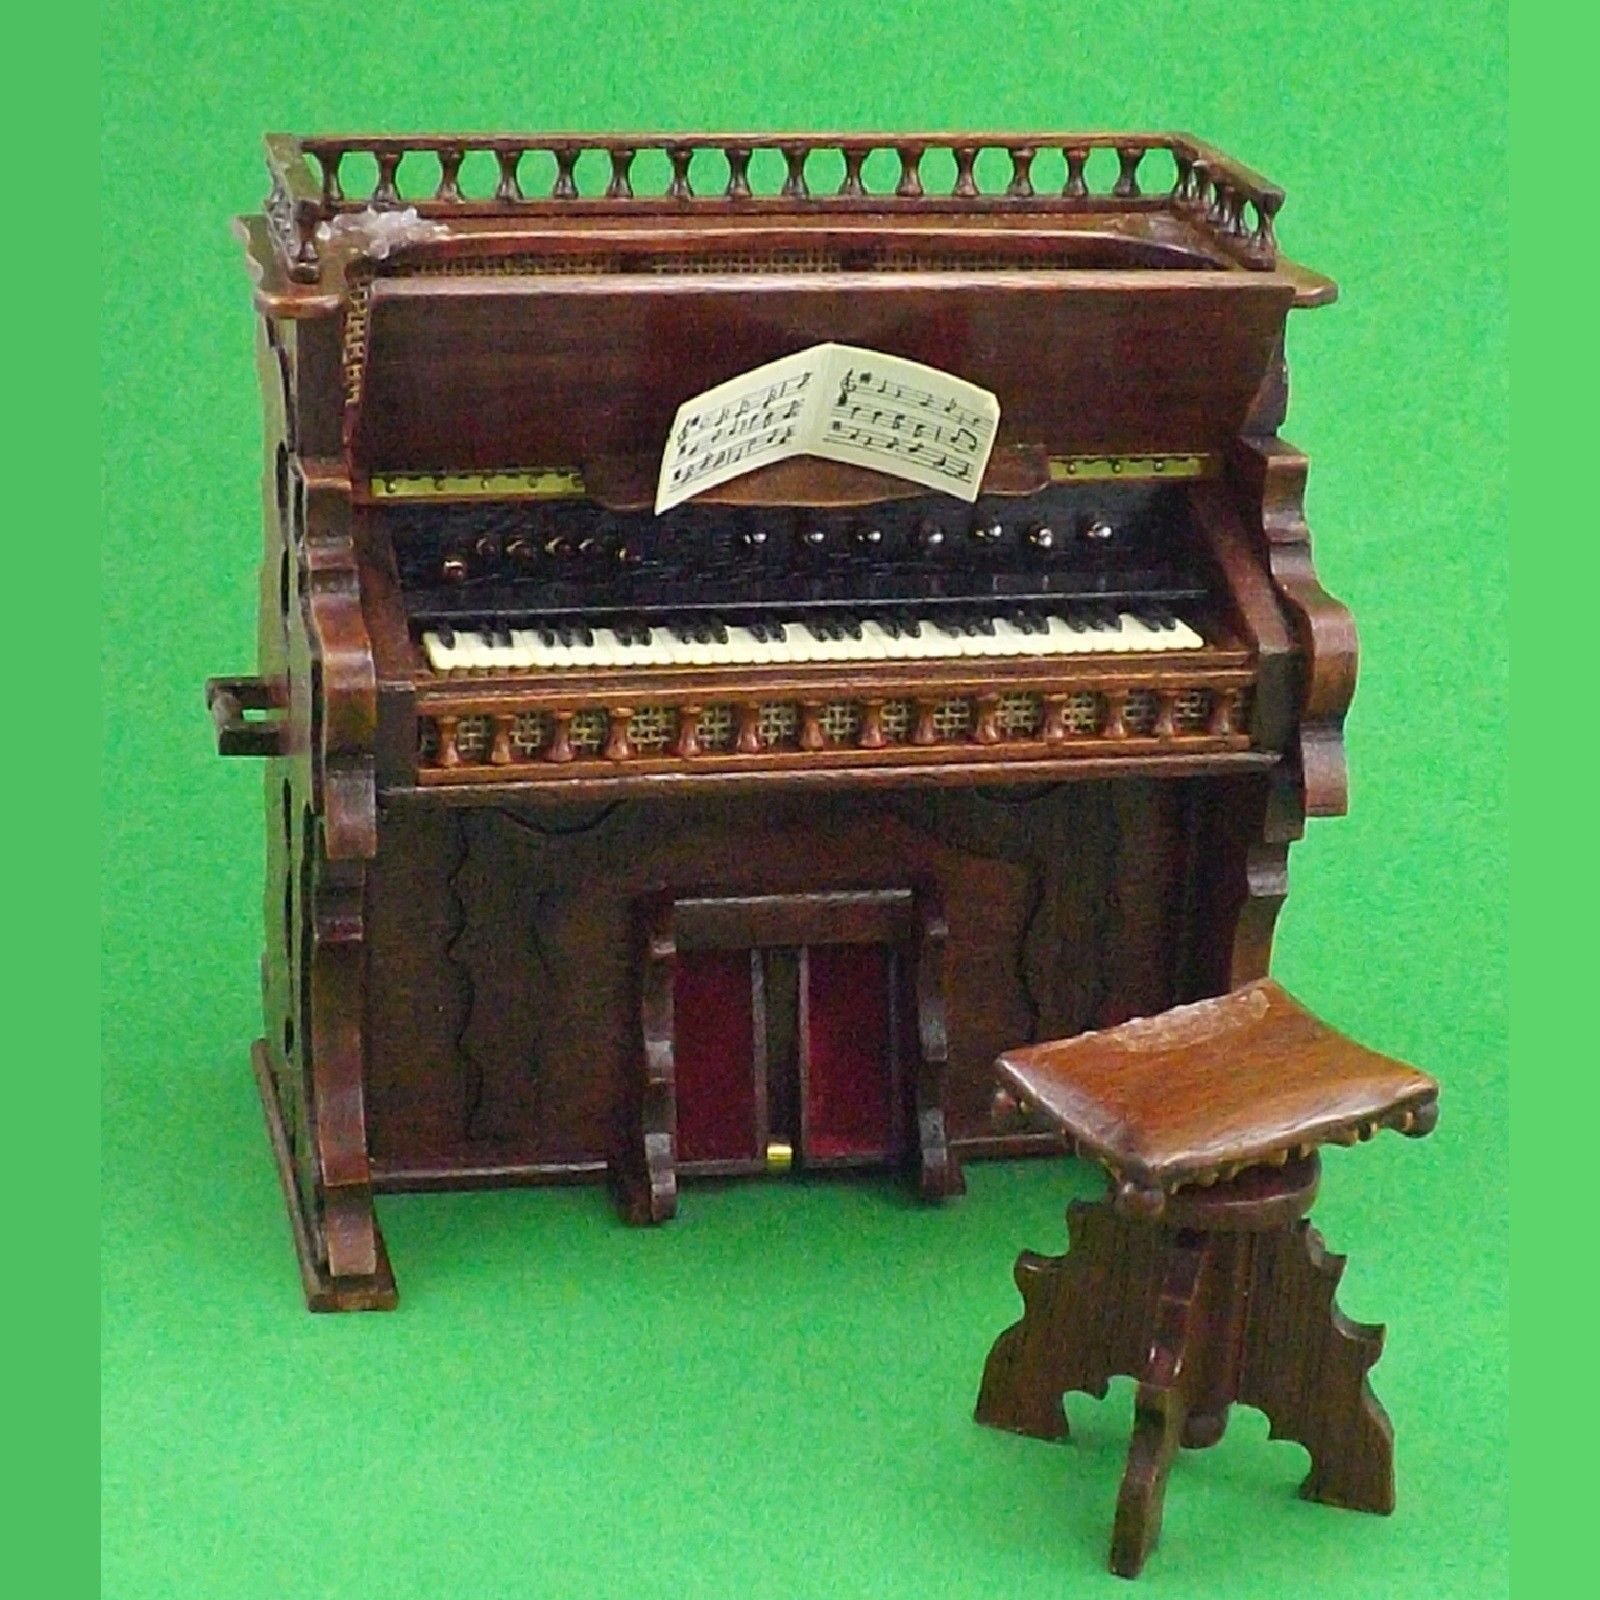 Rose Thomas Collection Miniature Organ Signed J C Lewis 1984 Limited edition 8 of 25 with Stool